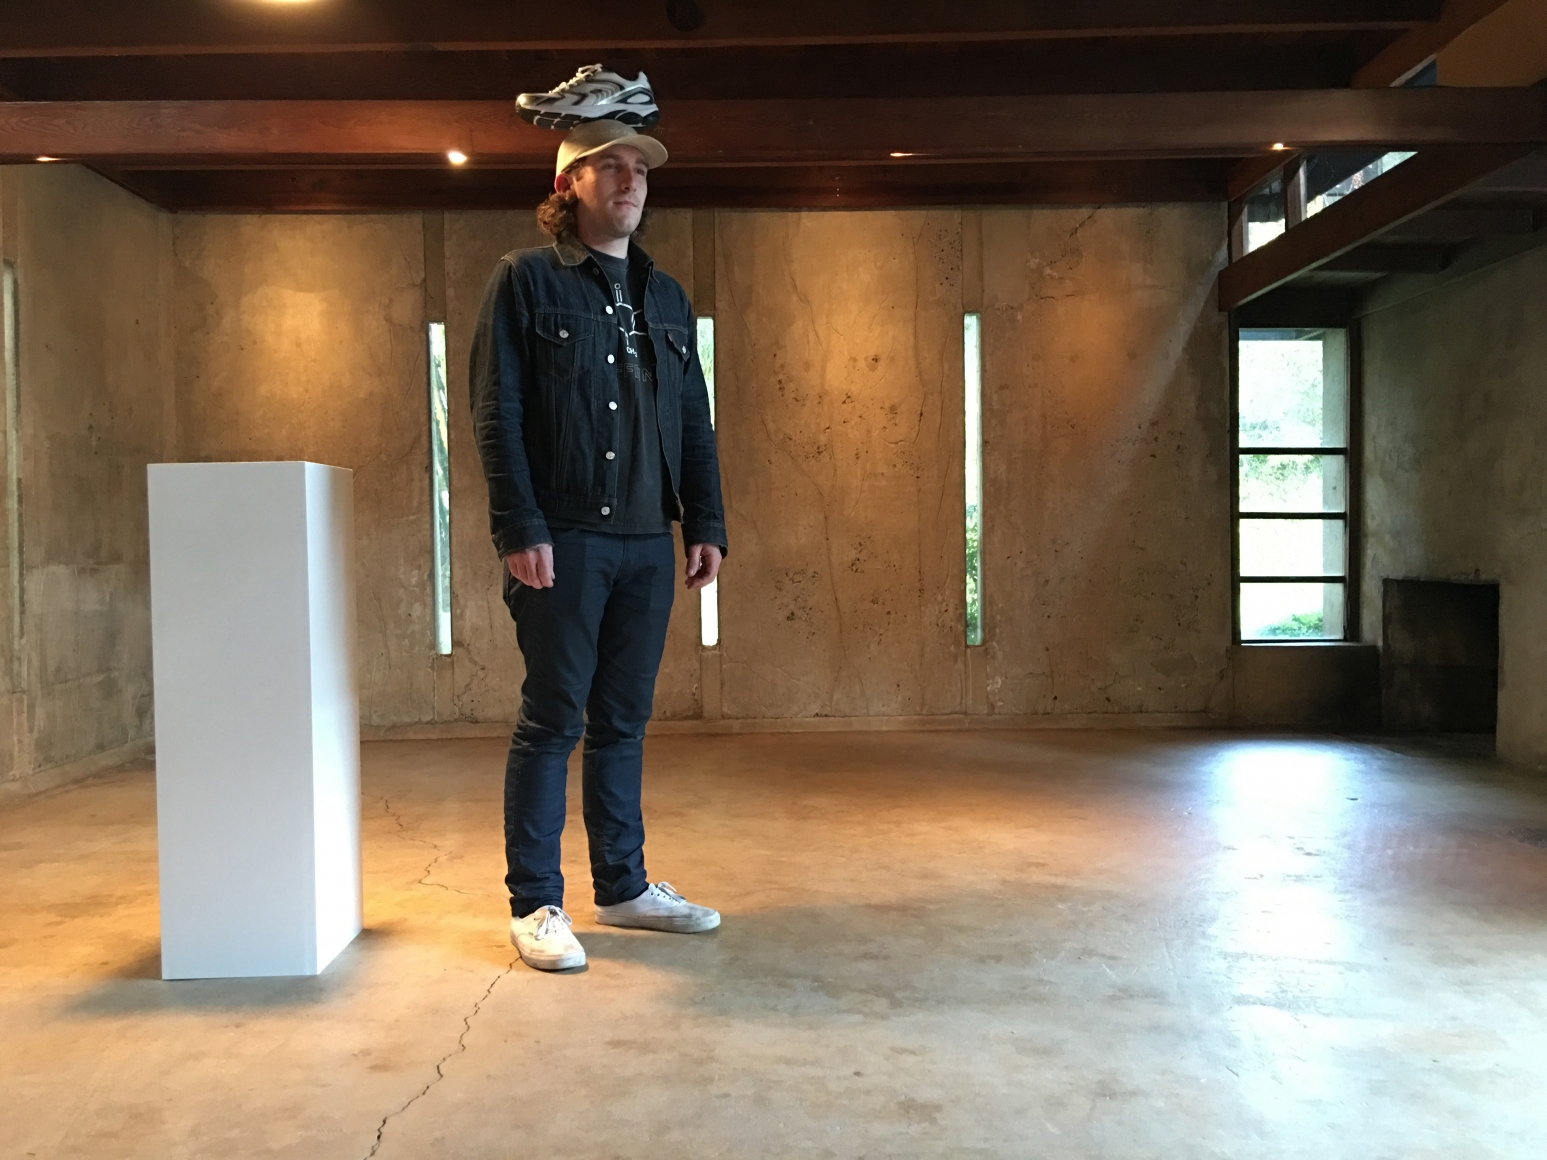 Erwin Wurm, One Minute Sculptures, Installation view, MAK Center for Art and Architecture, Los Angeles at the Schindler House, CA